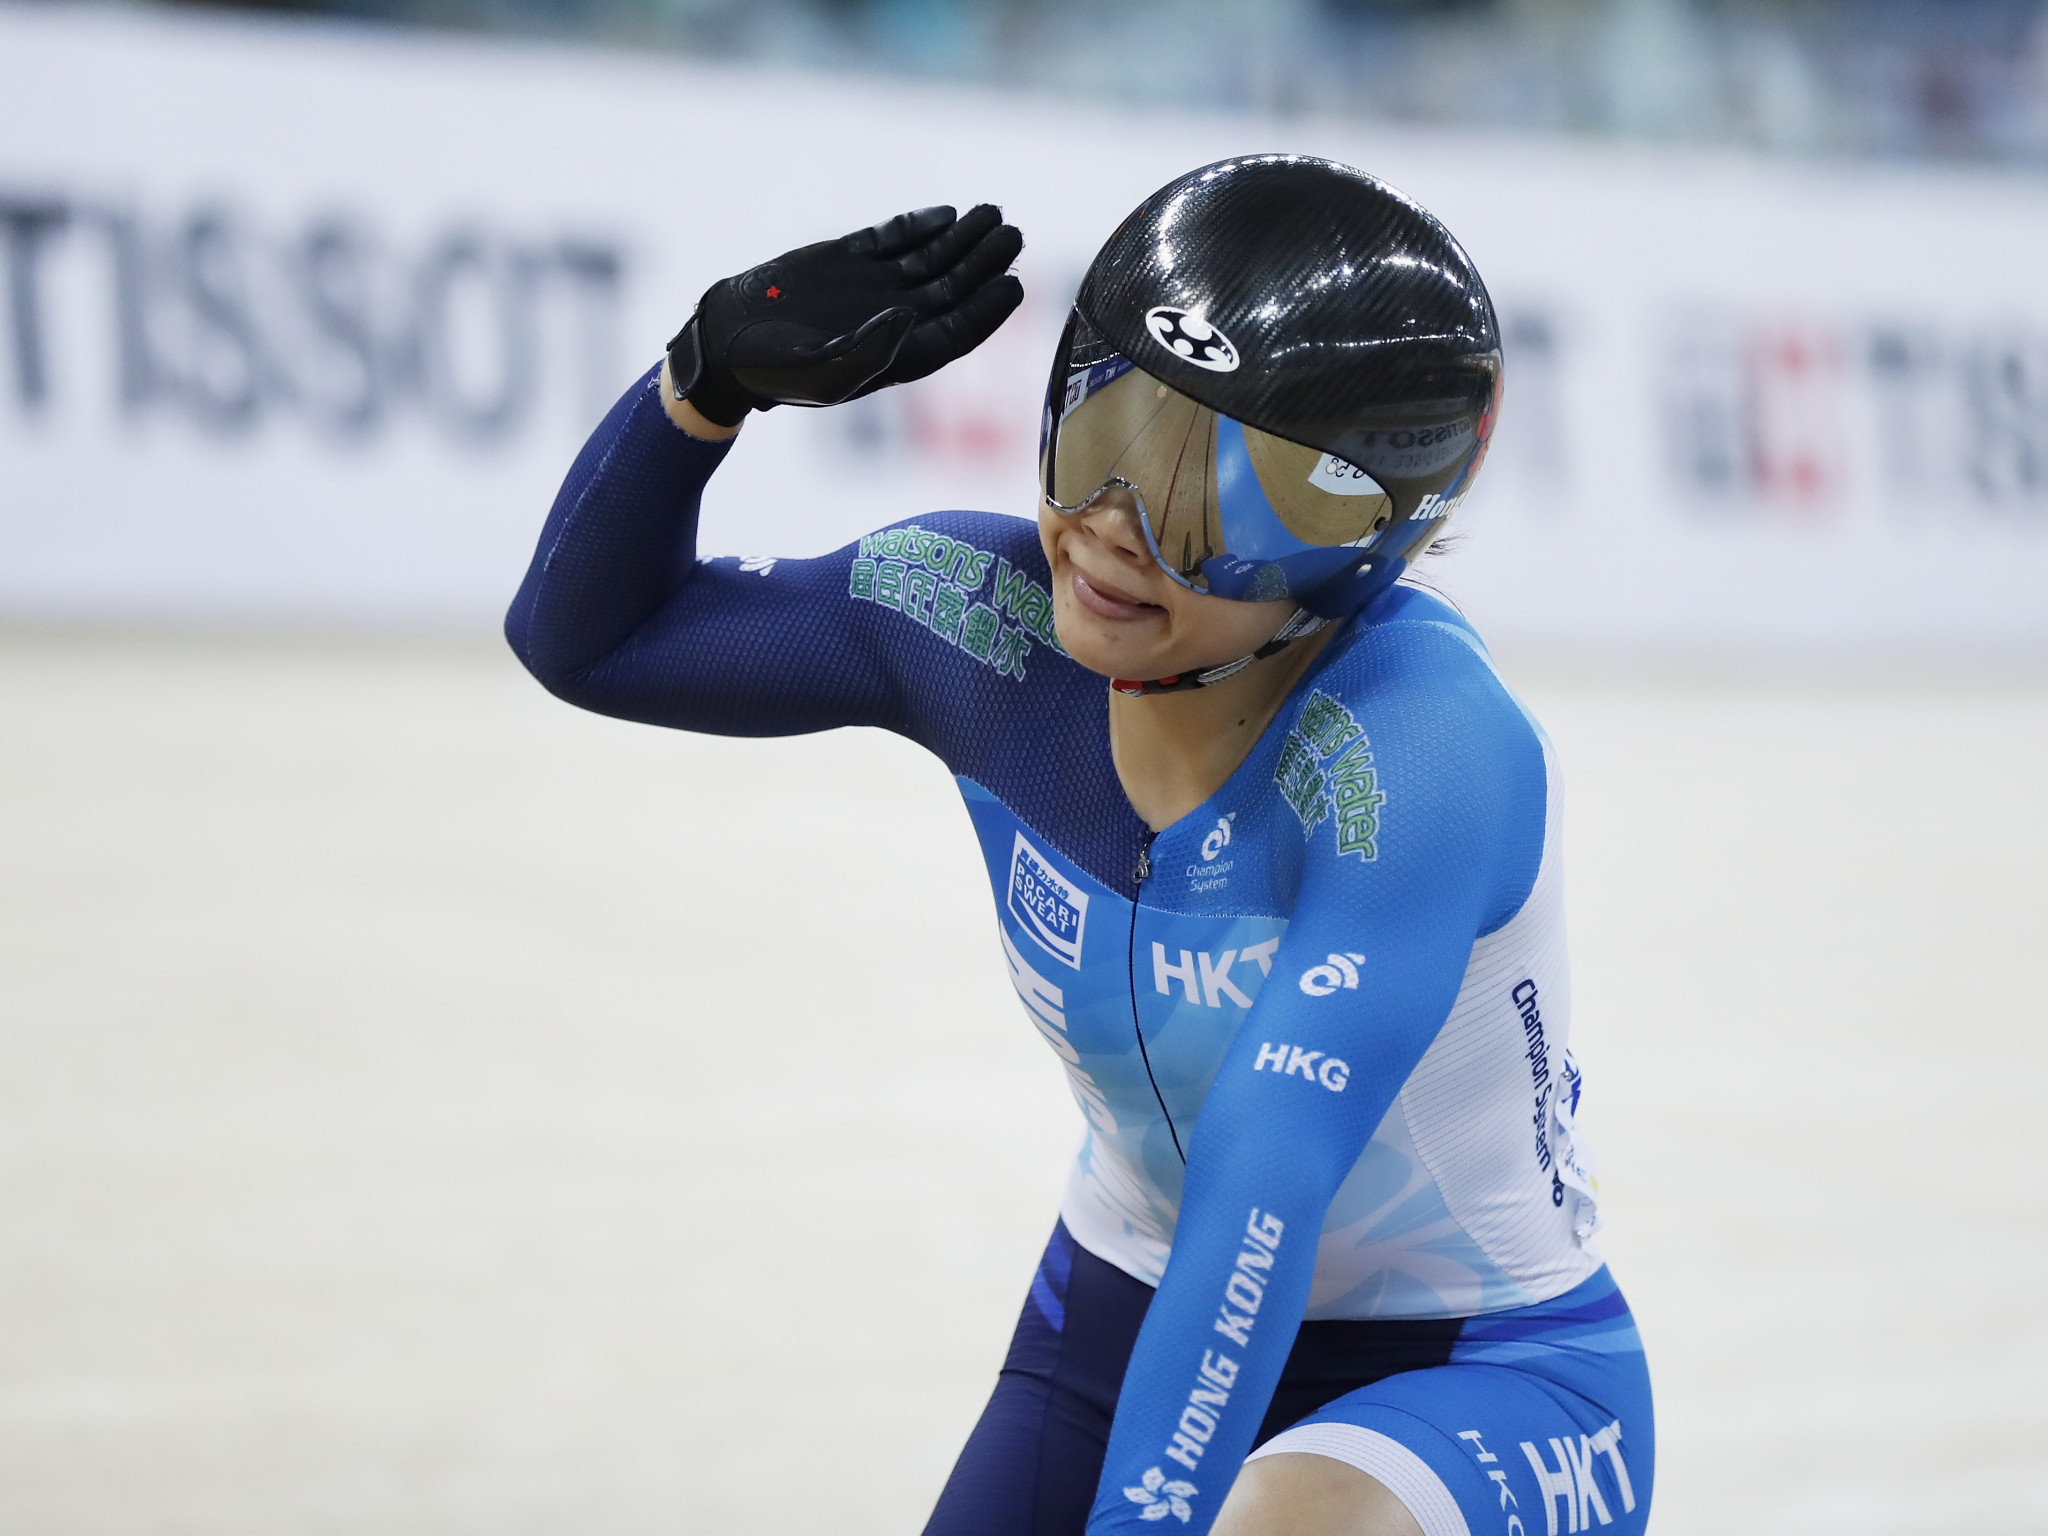 Hong Kong's Lee Wai Sze claimed the women's sprint title on the third day of Ashgabat 2017 track cycling competition ©Getty Images